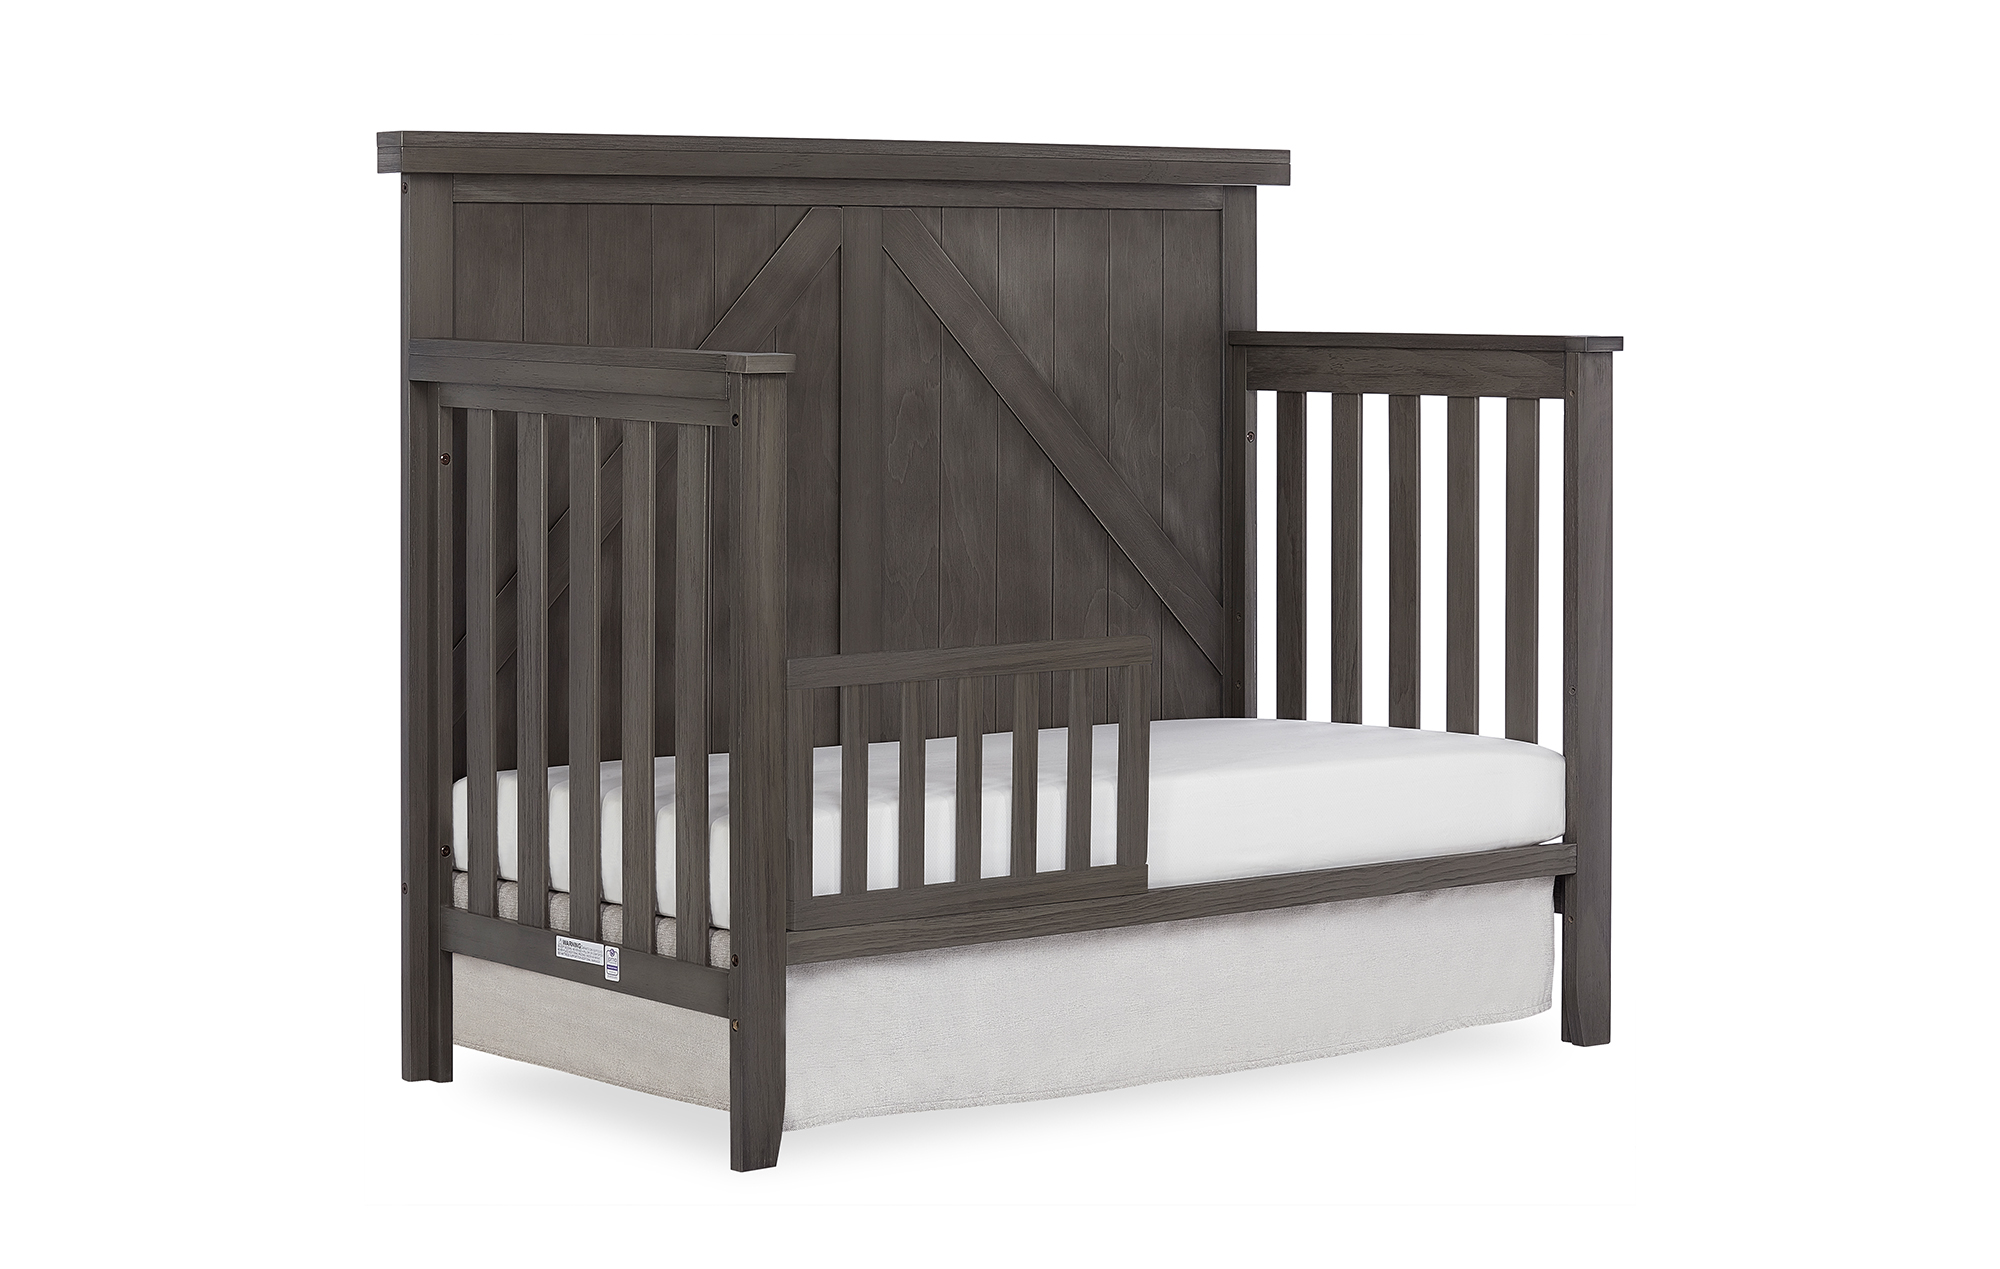 771BR-WGREY Olive Toddler Bed